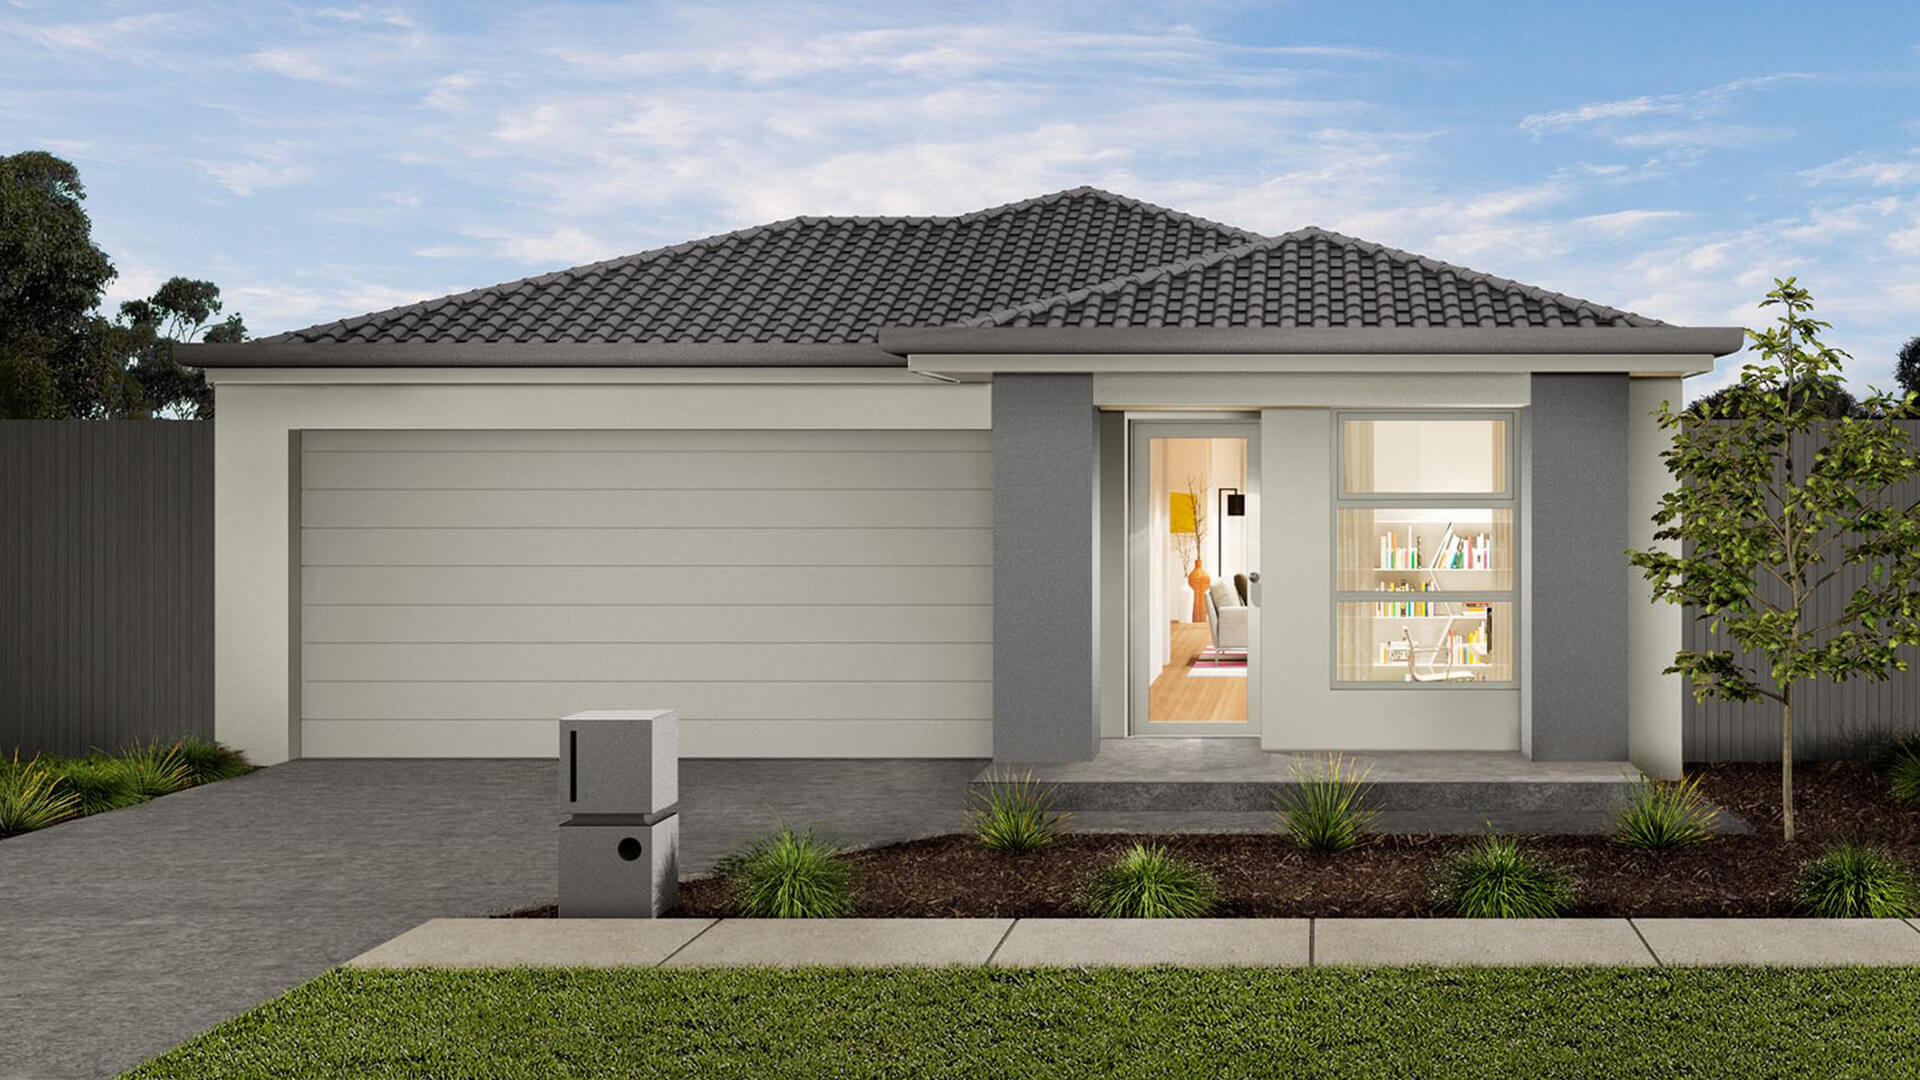 EASYLIVING ASTRA 10.5 (HEBEL) Exterior Image 2